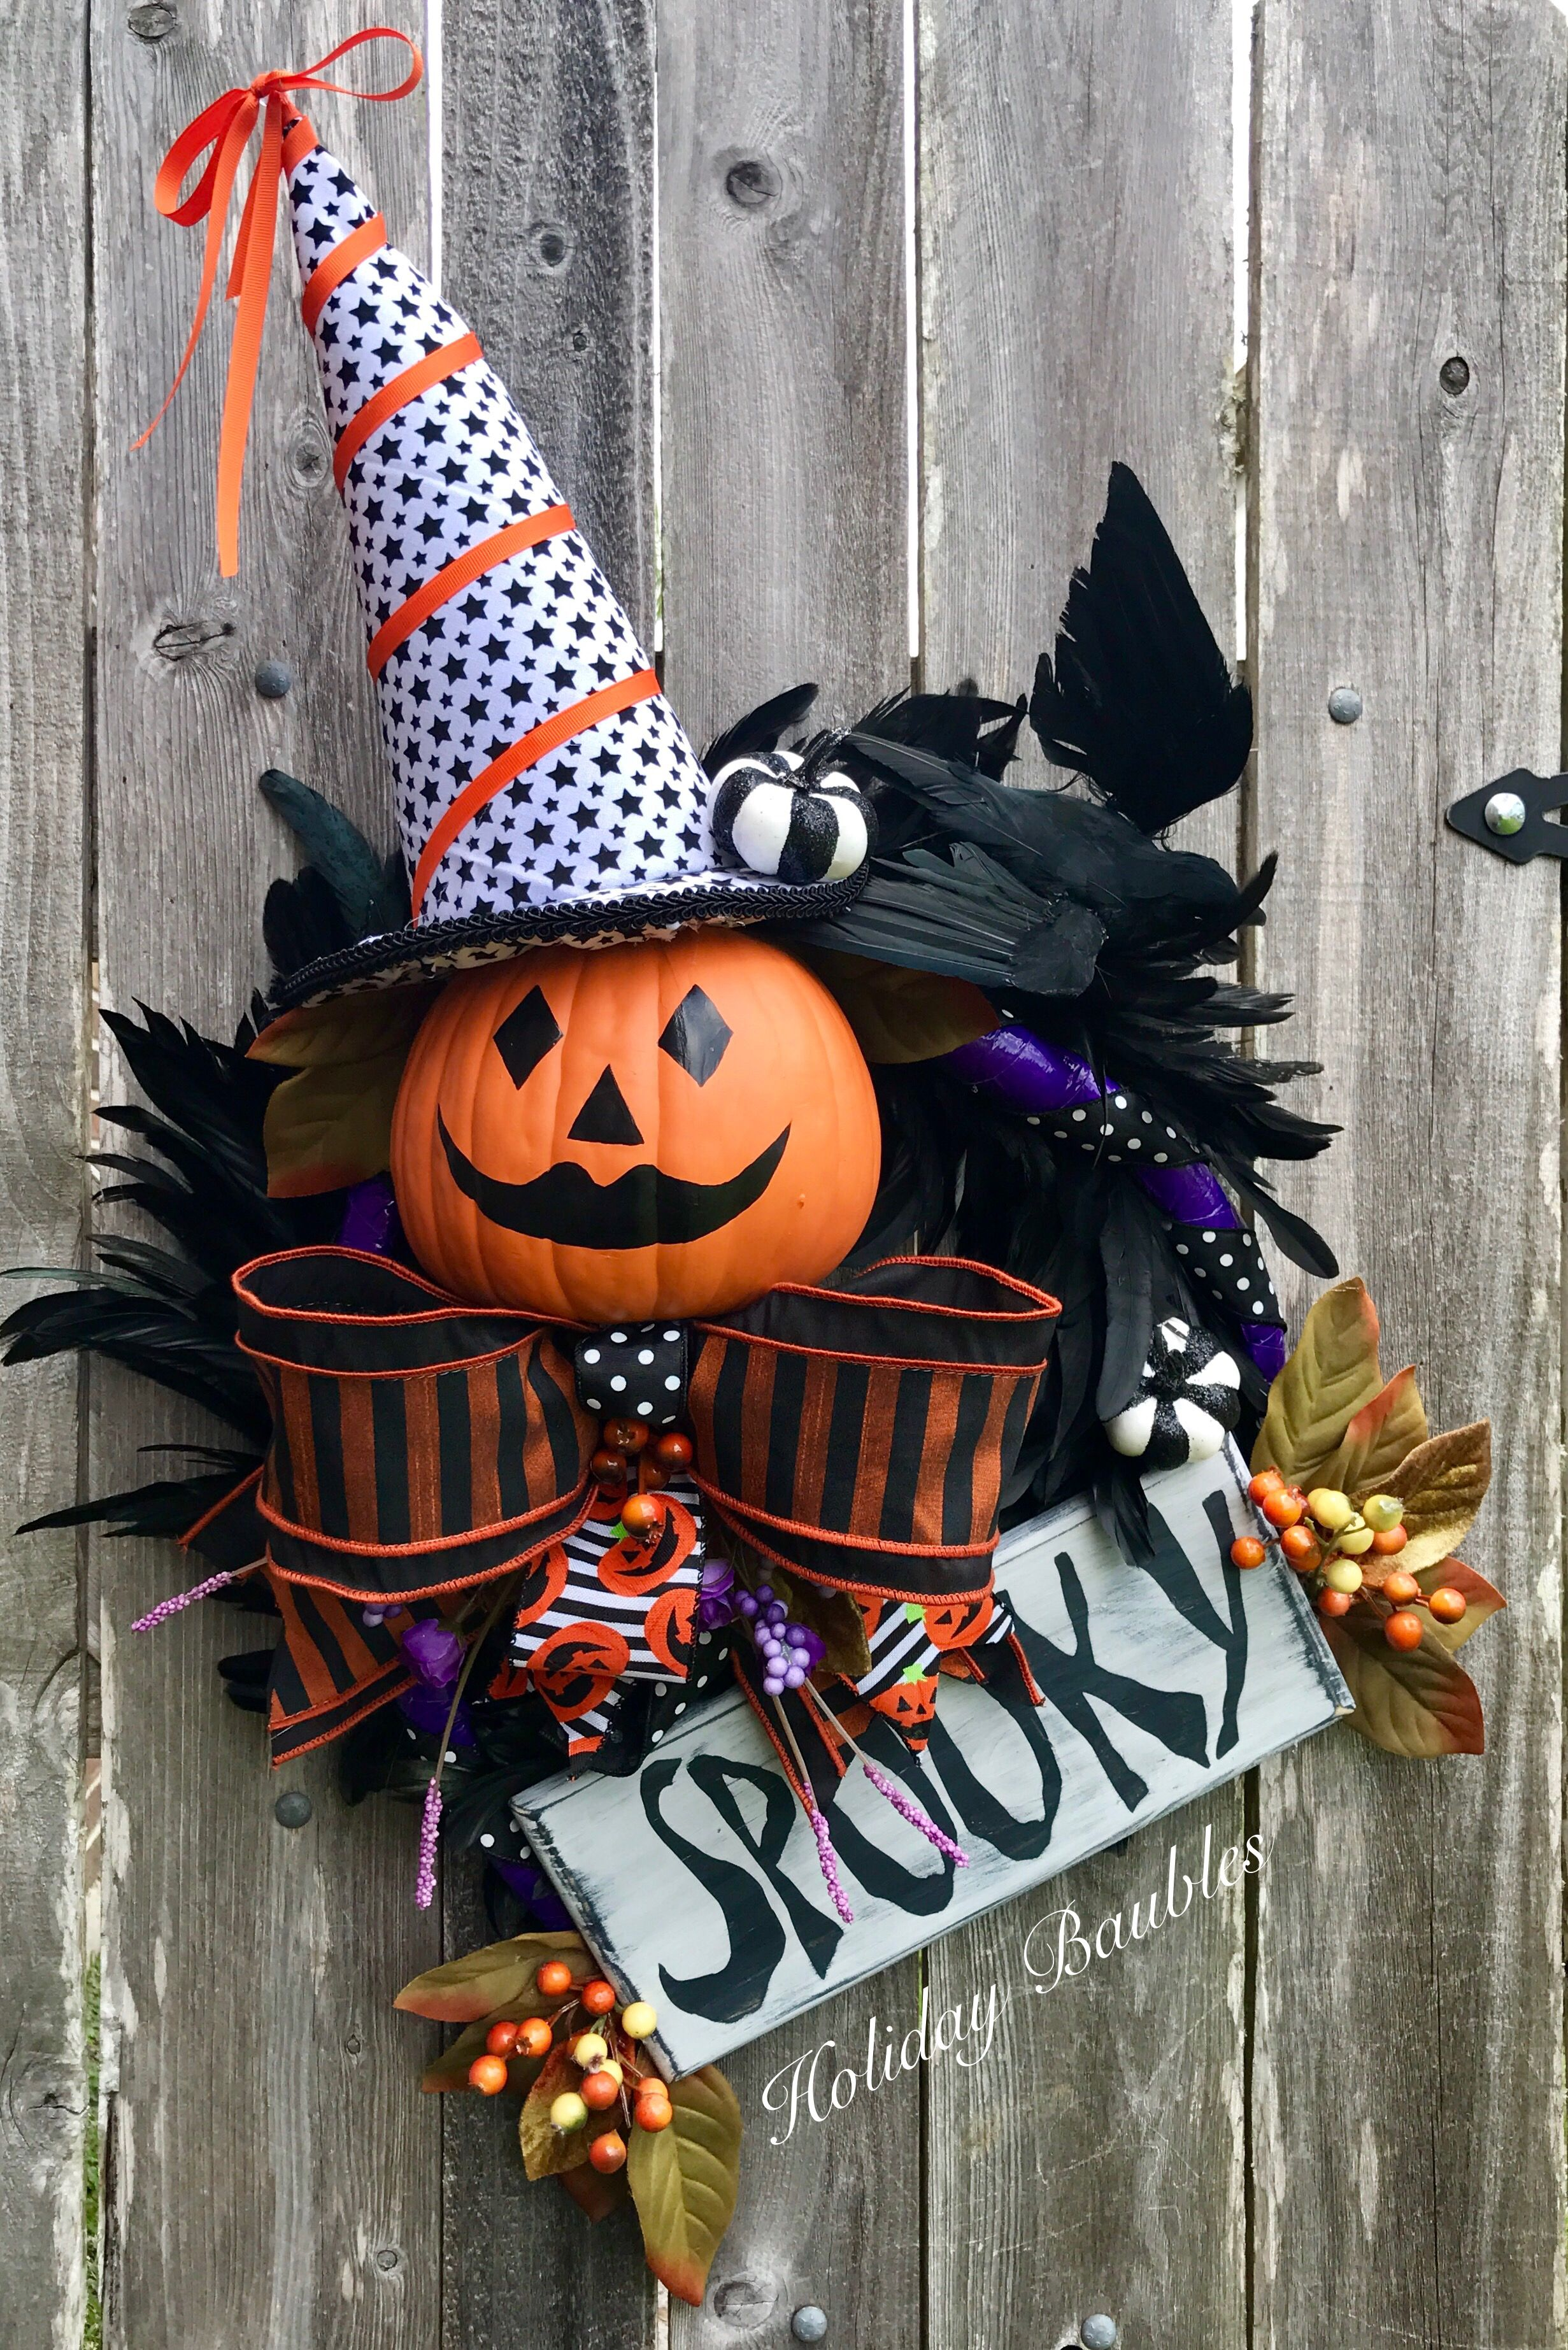 Halloween Jack O Lantern SPOOKY by Holiday Baubles | Fall Fun ...